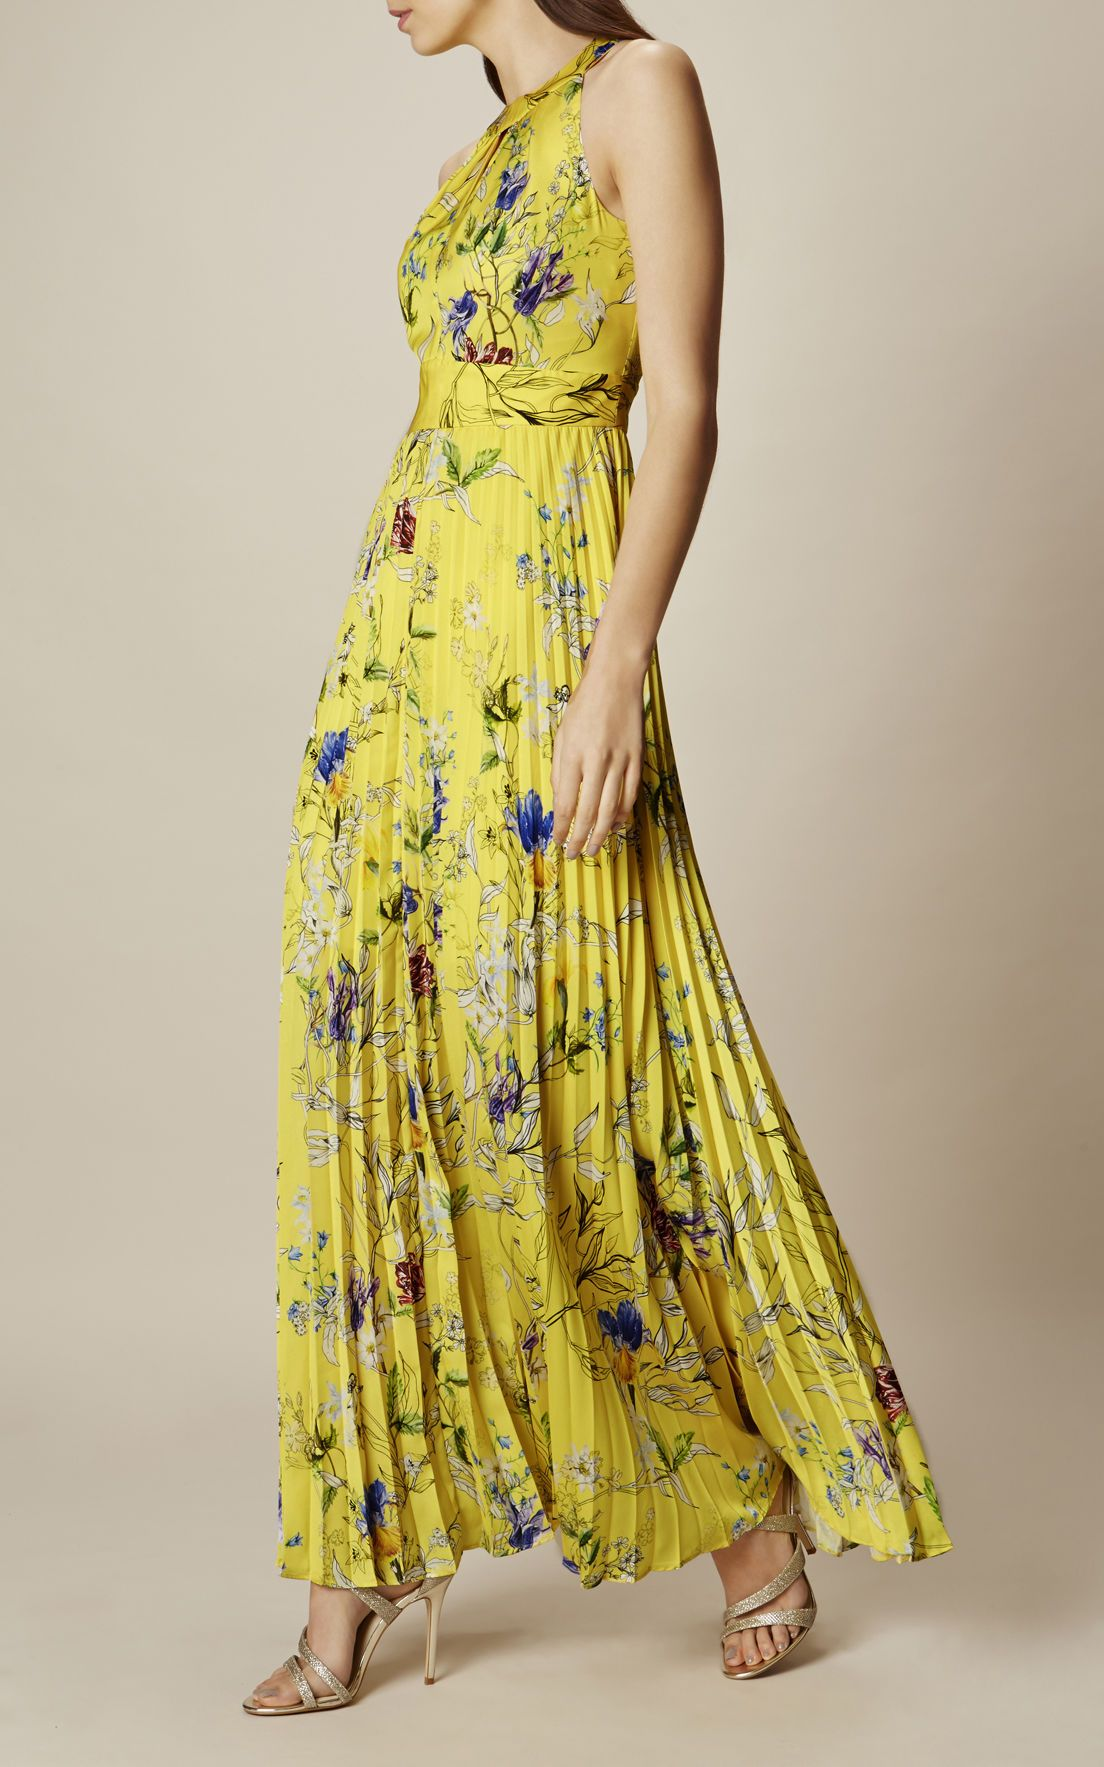 bd12e3bdac Karen Millen, YELLOW FLORAL MAXI DRESS Yellow/Multi 1 | Bosci ...